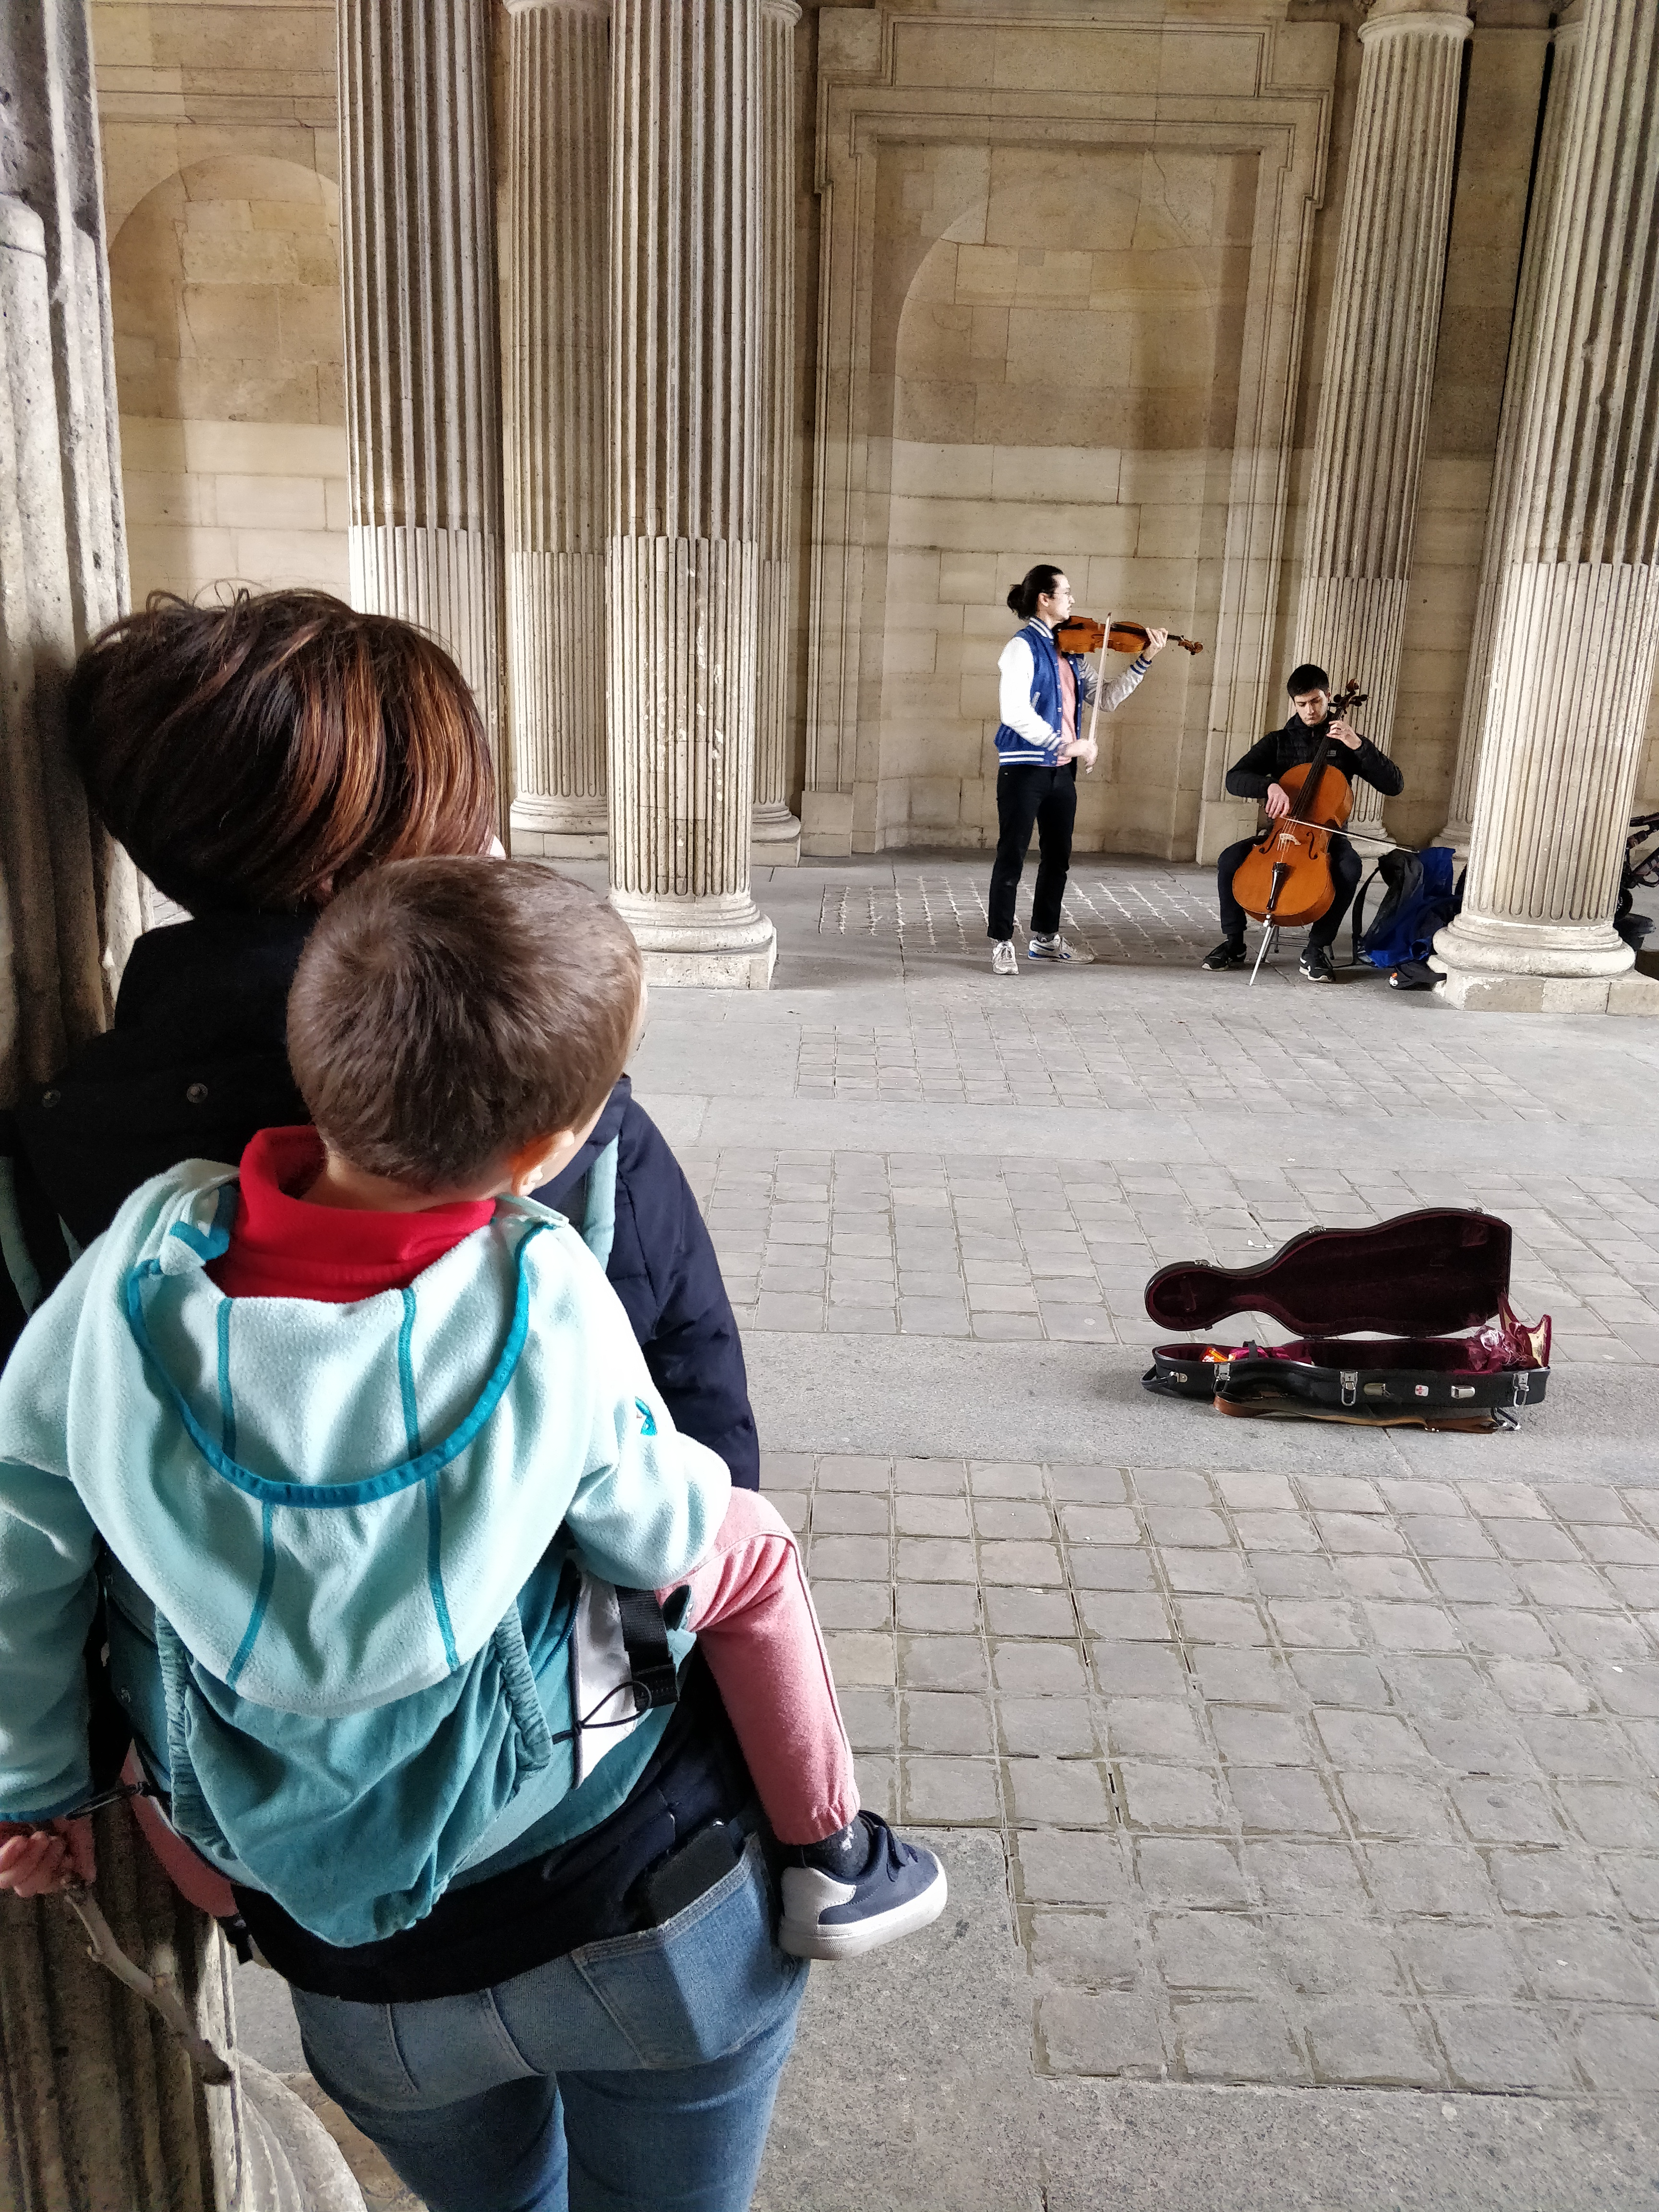 Enjoying street music, Paris, France